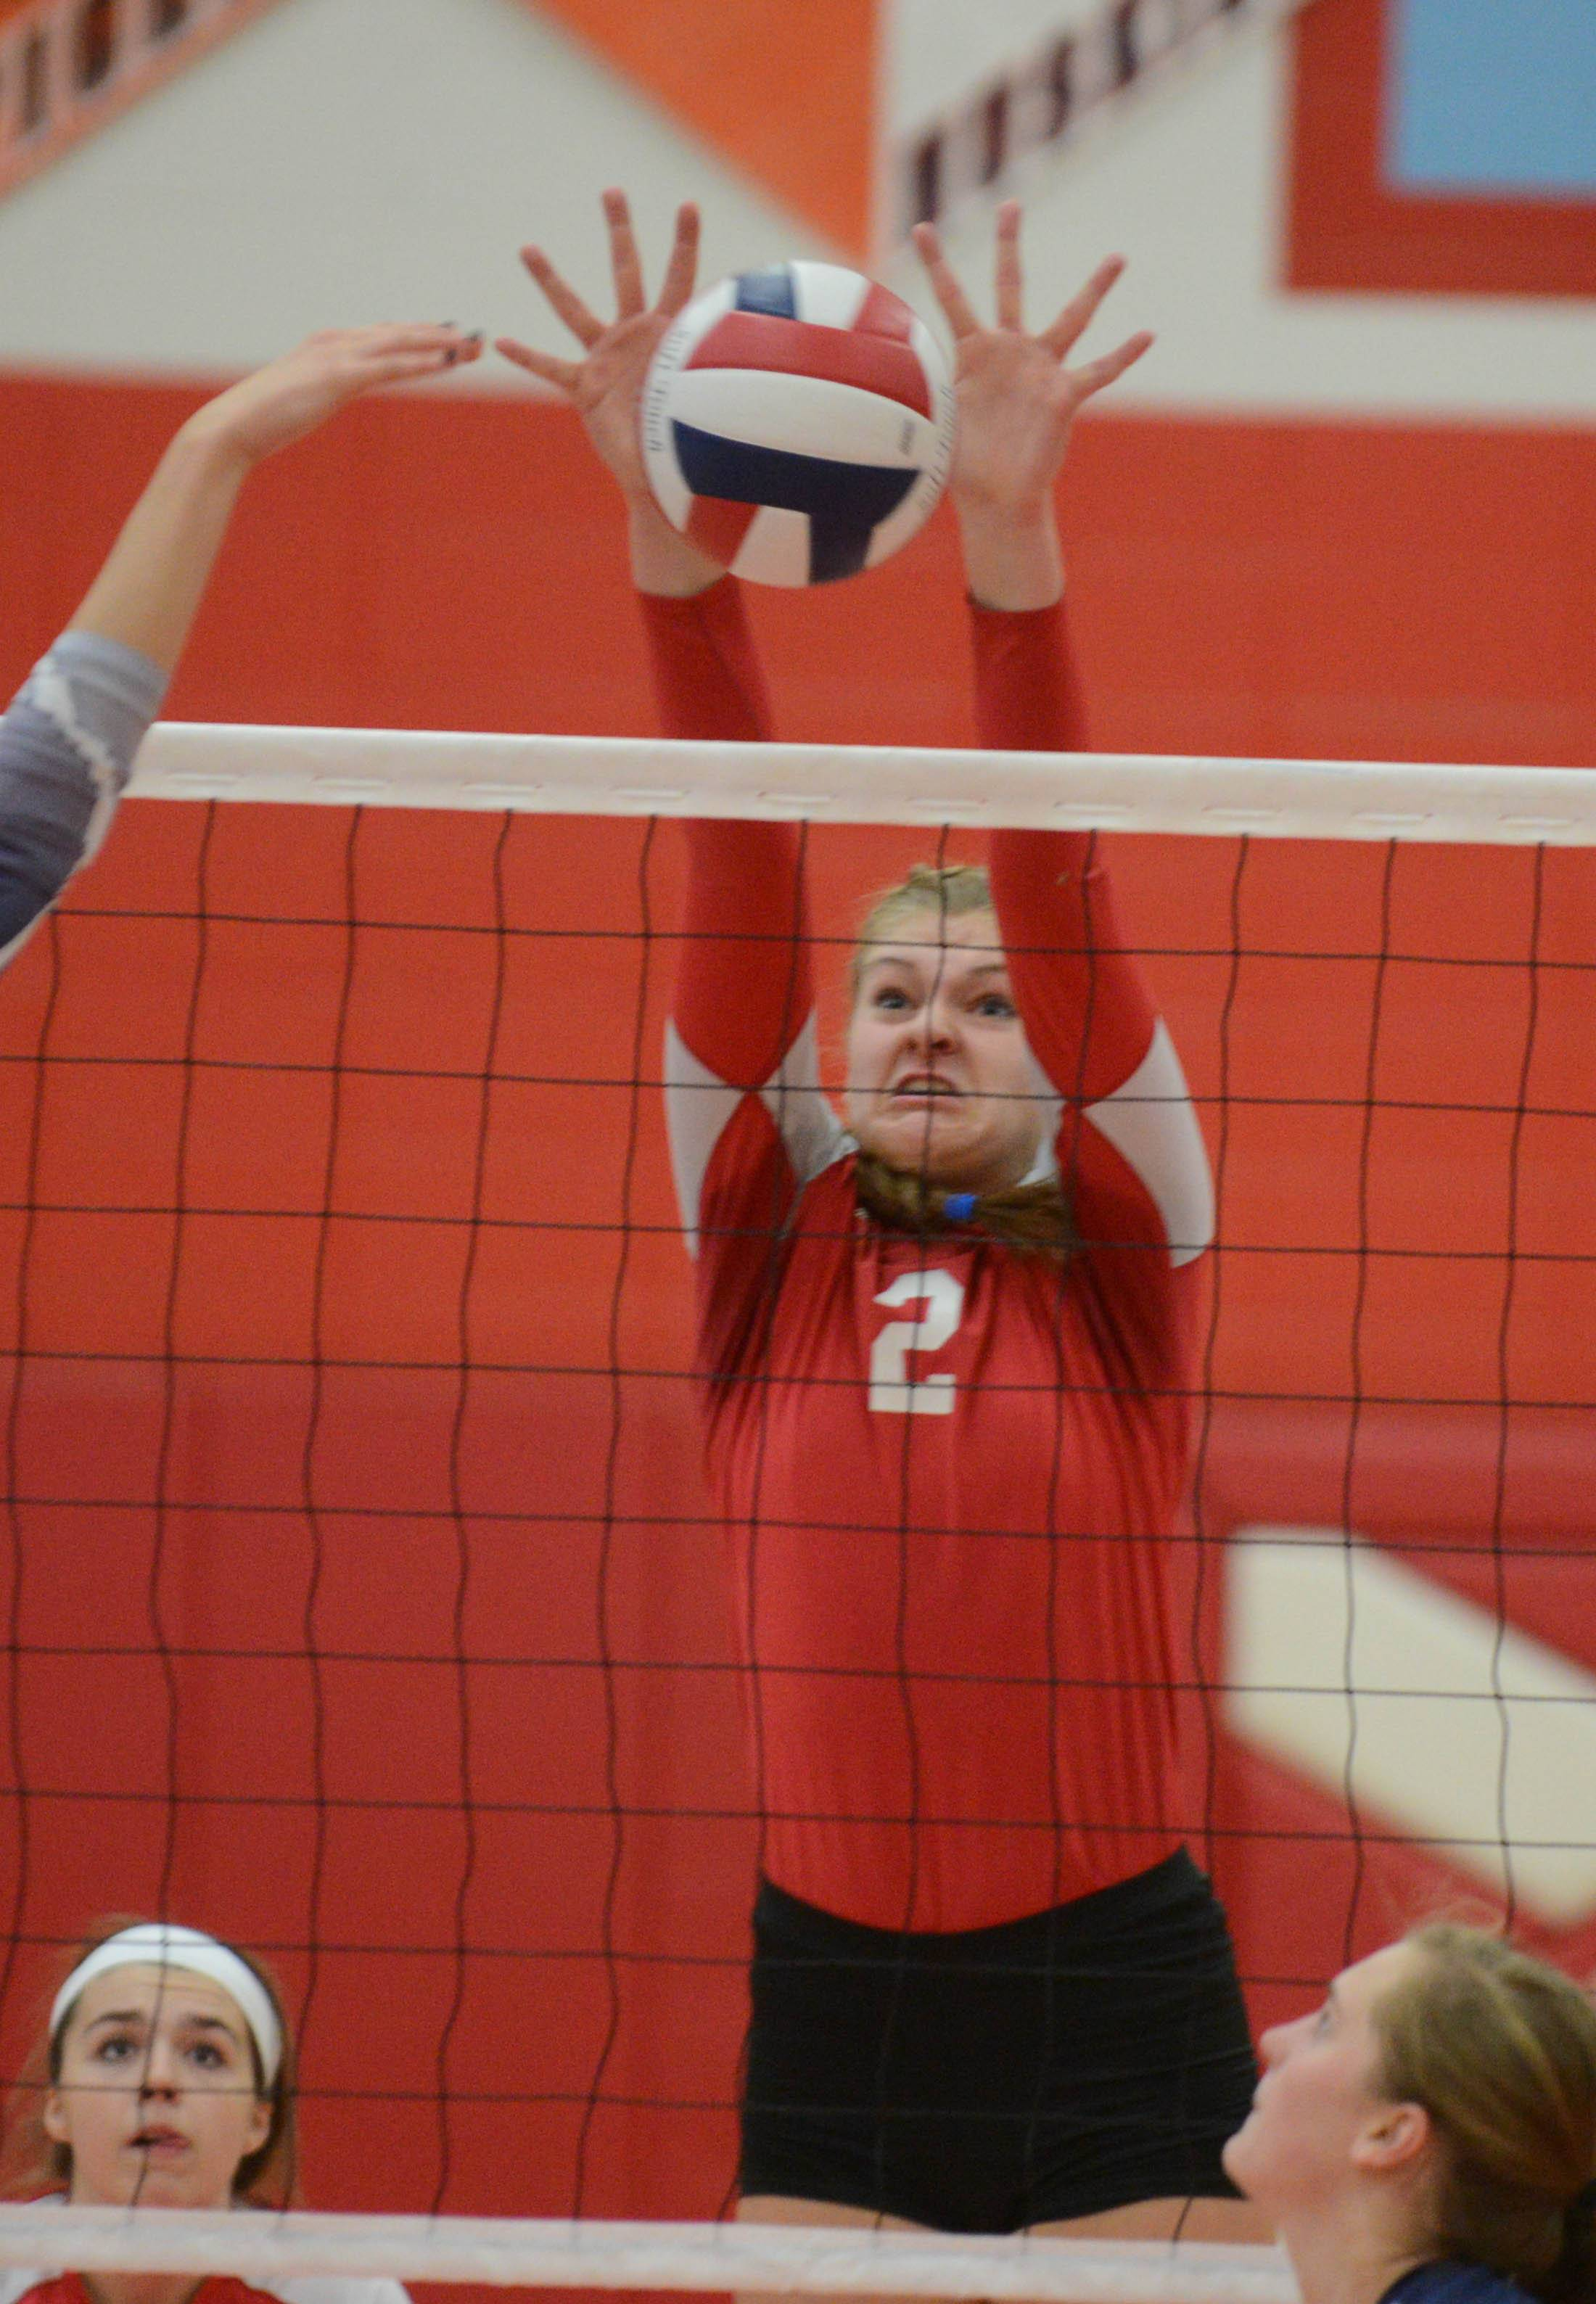 Paul Michna/pmichna@dailyherald.com ¬ Phoebe Havenaar of Naperville Central goes up for a block during the Naperville North at Naperville Central girls volleyball gameThursday.